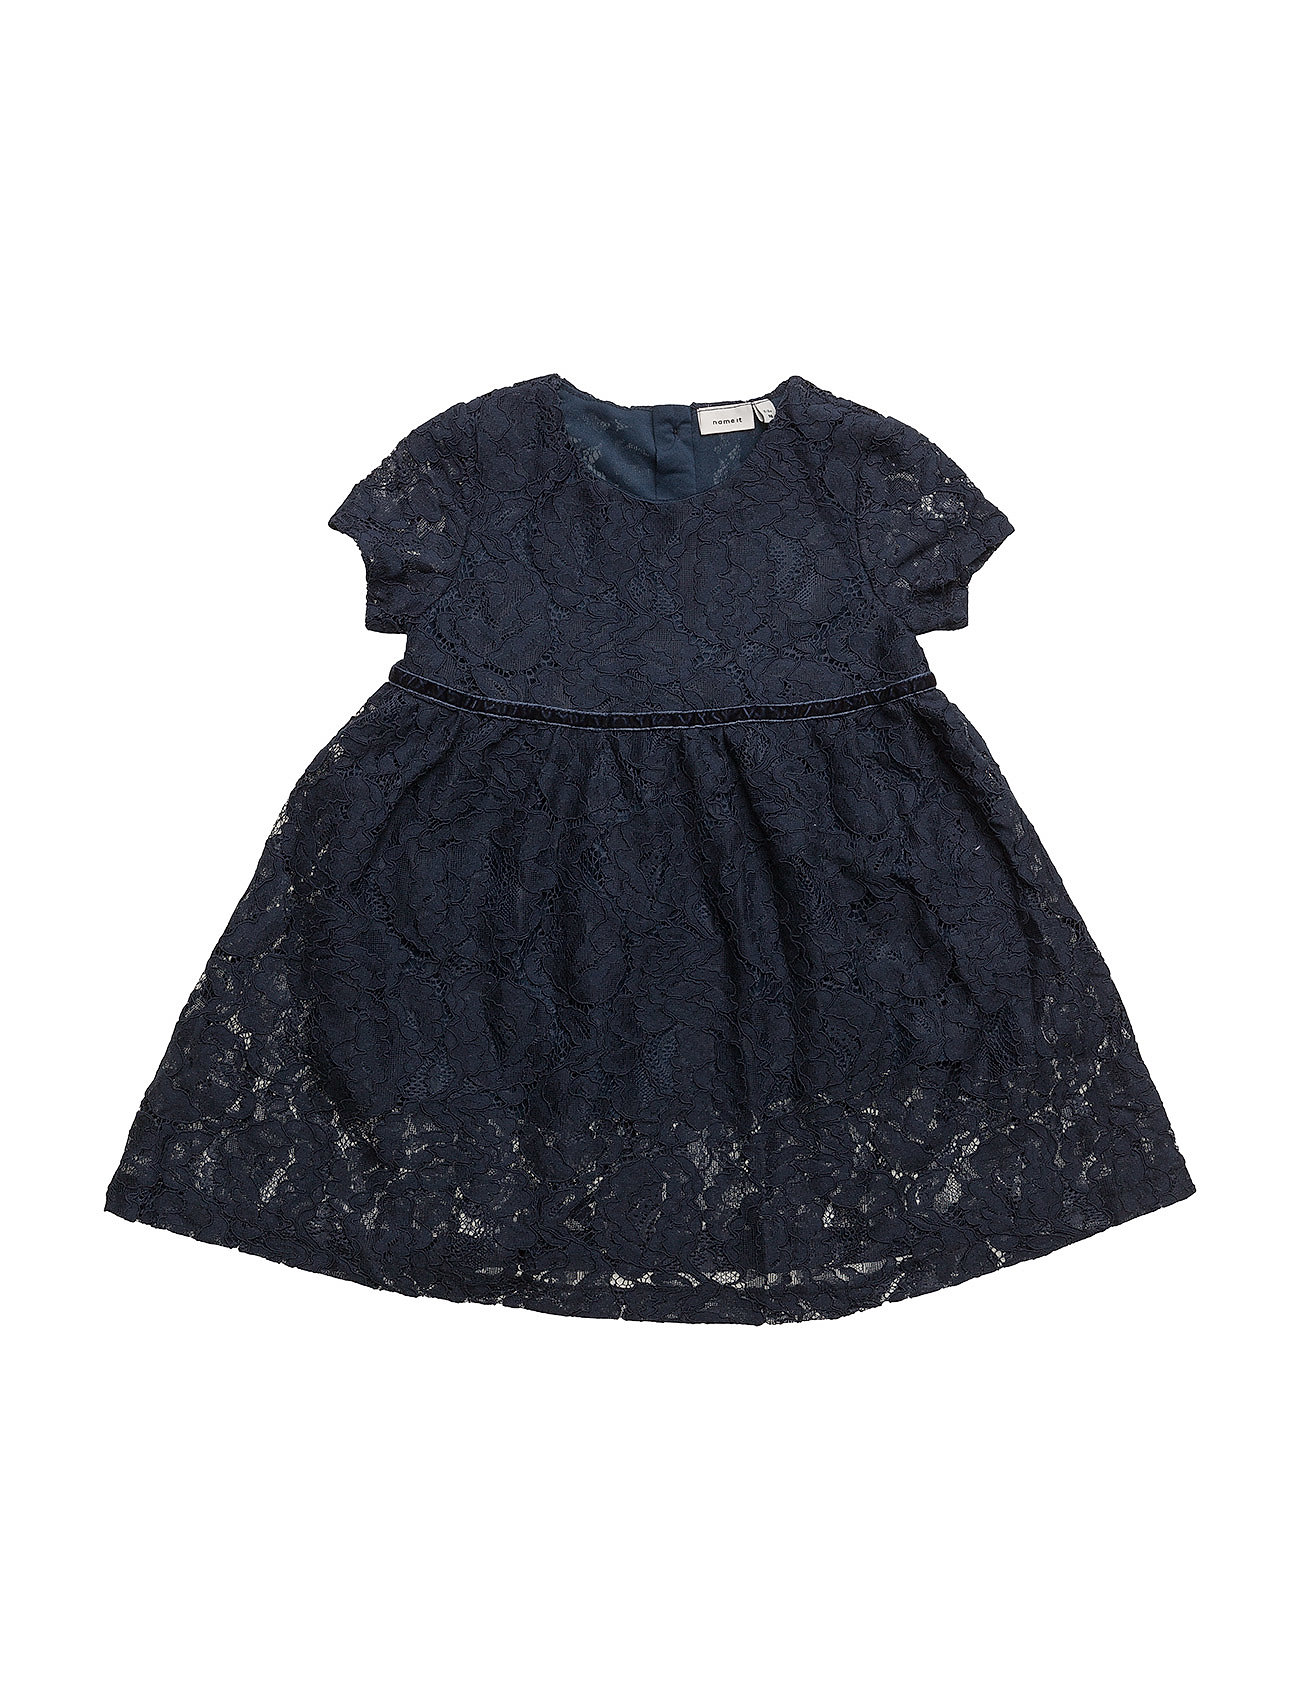 name it – Nitetlace ss dress wl f mini på boozt.com dk